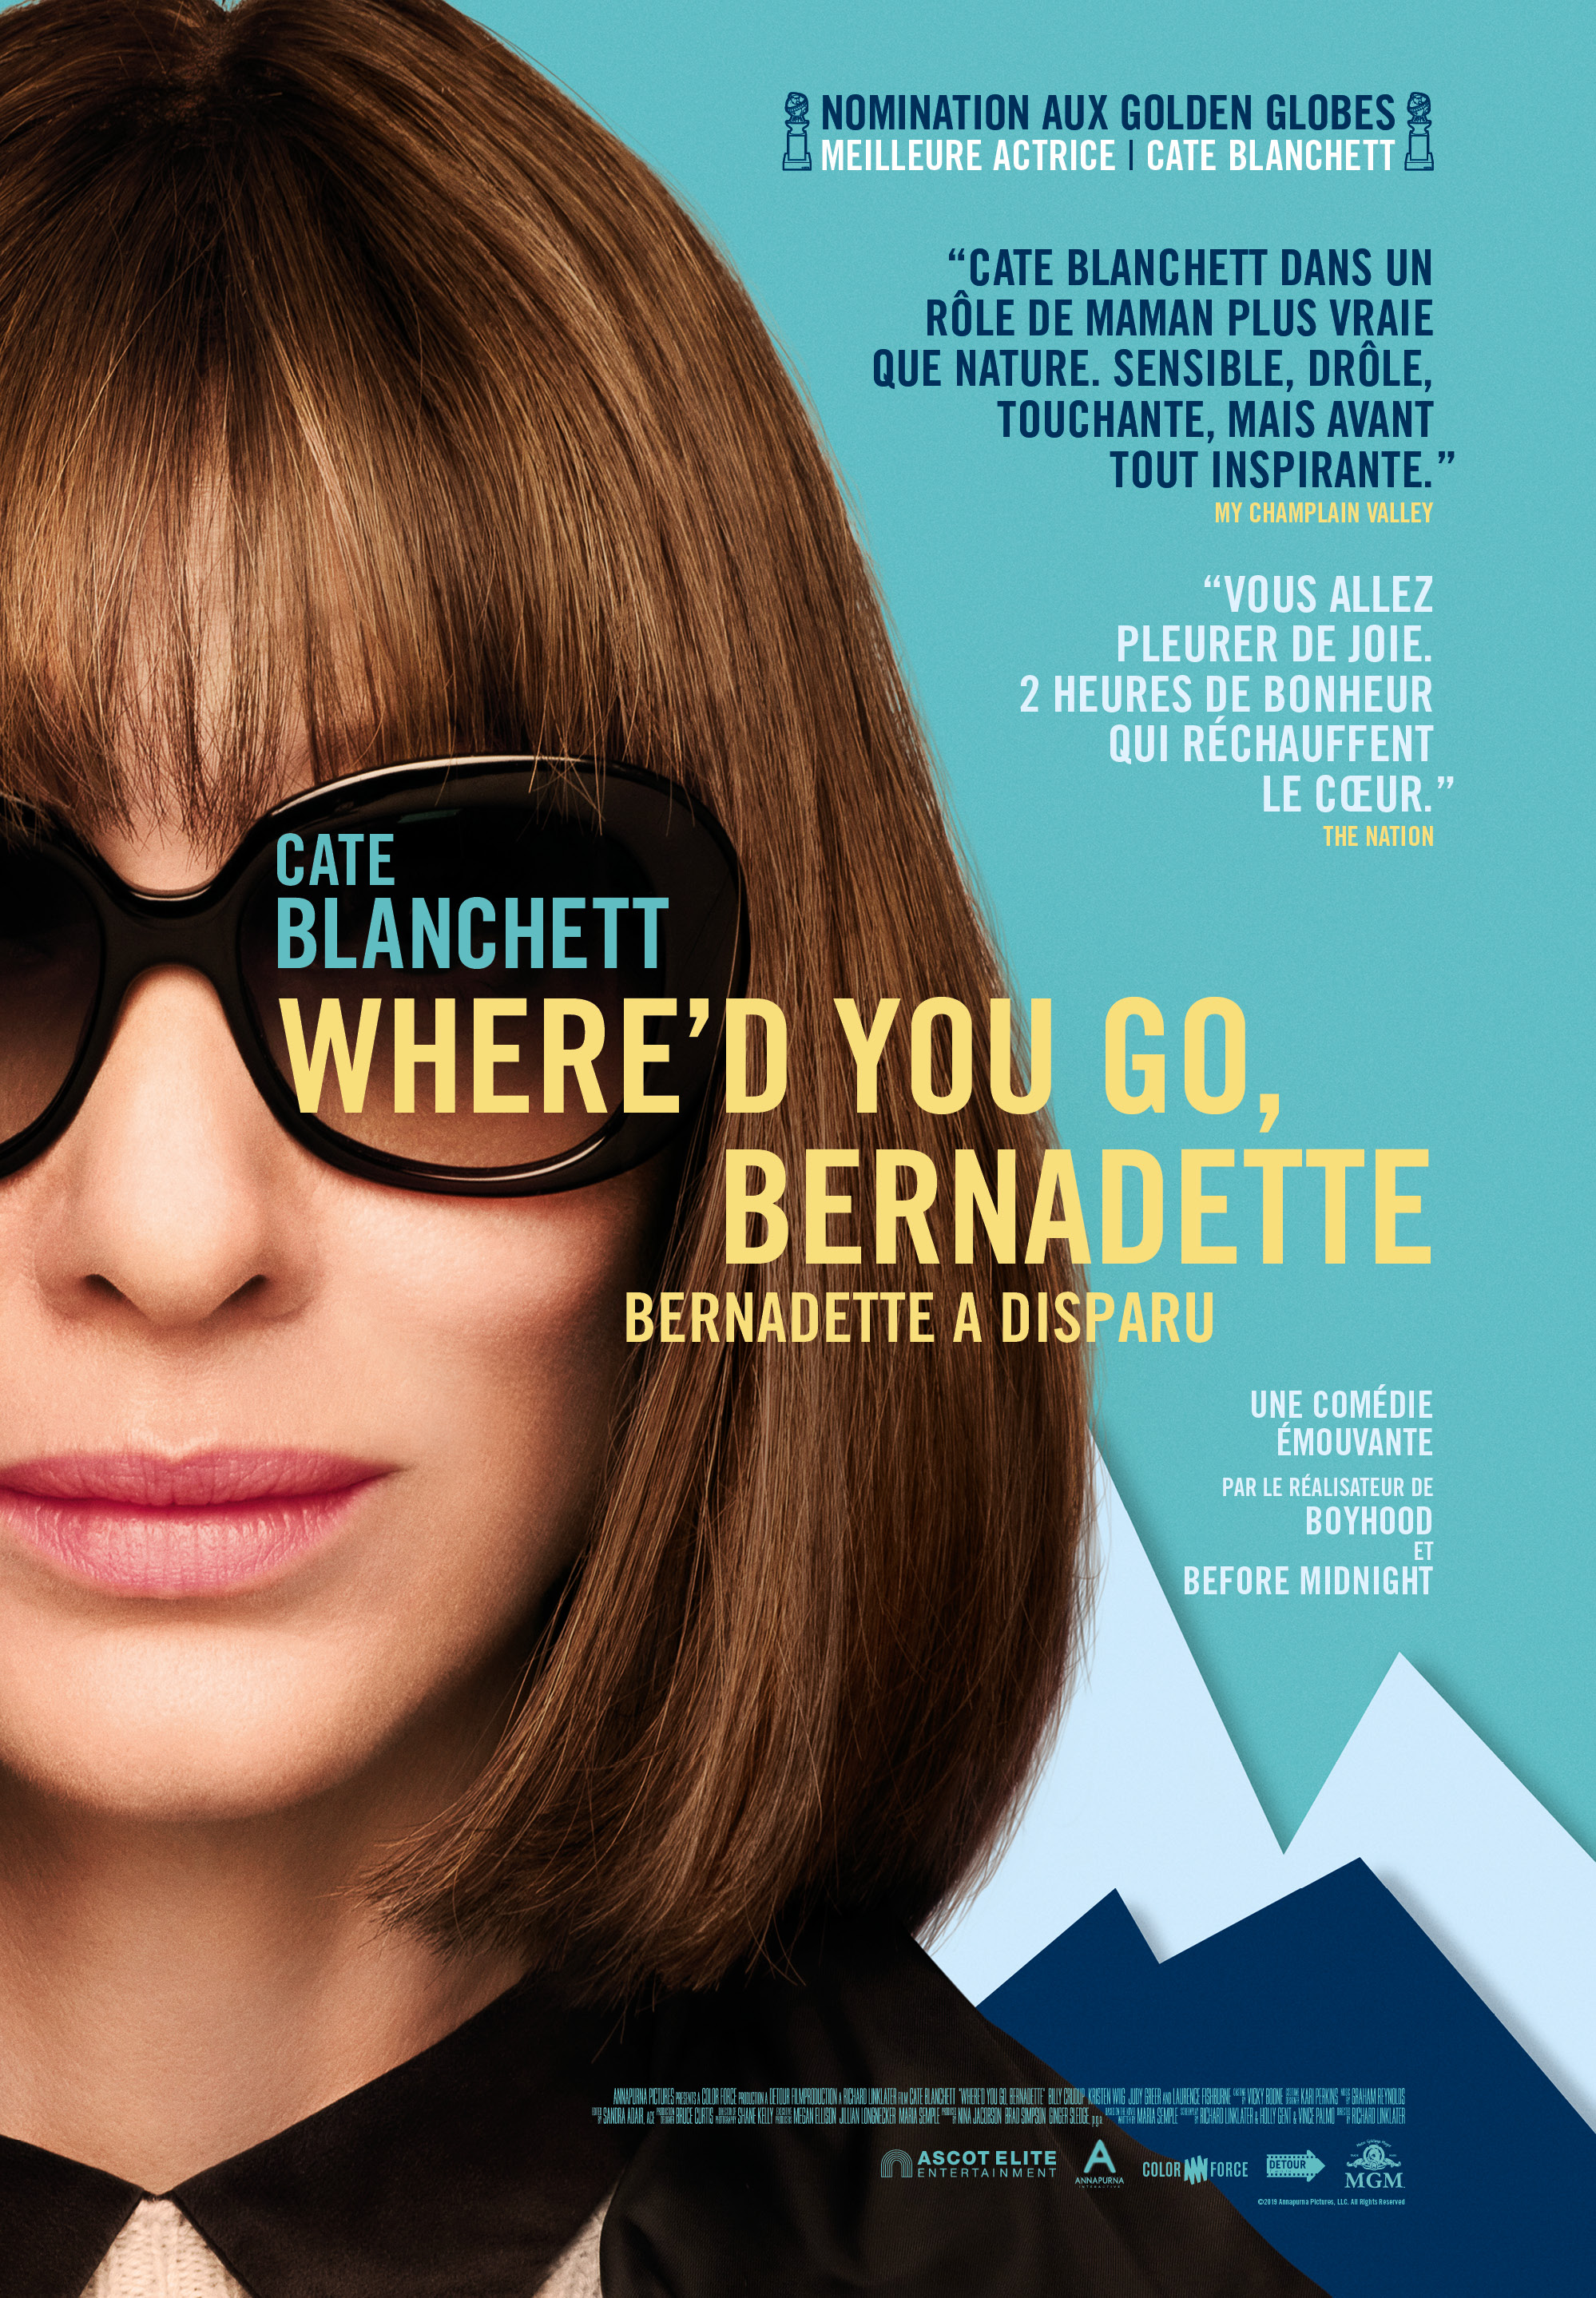 Where'd you go, Bernadette Samedi 10 octobre 20:30